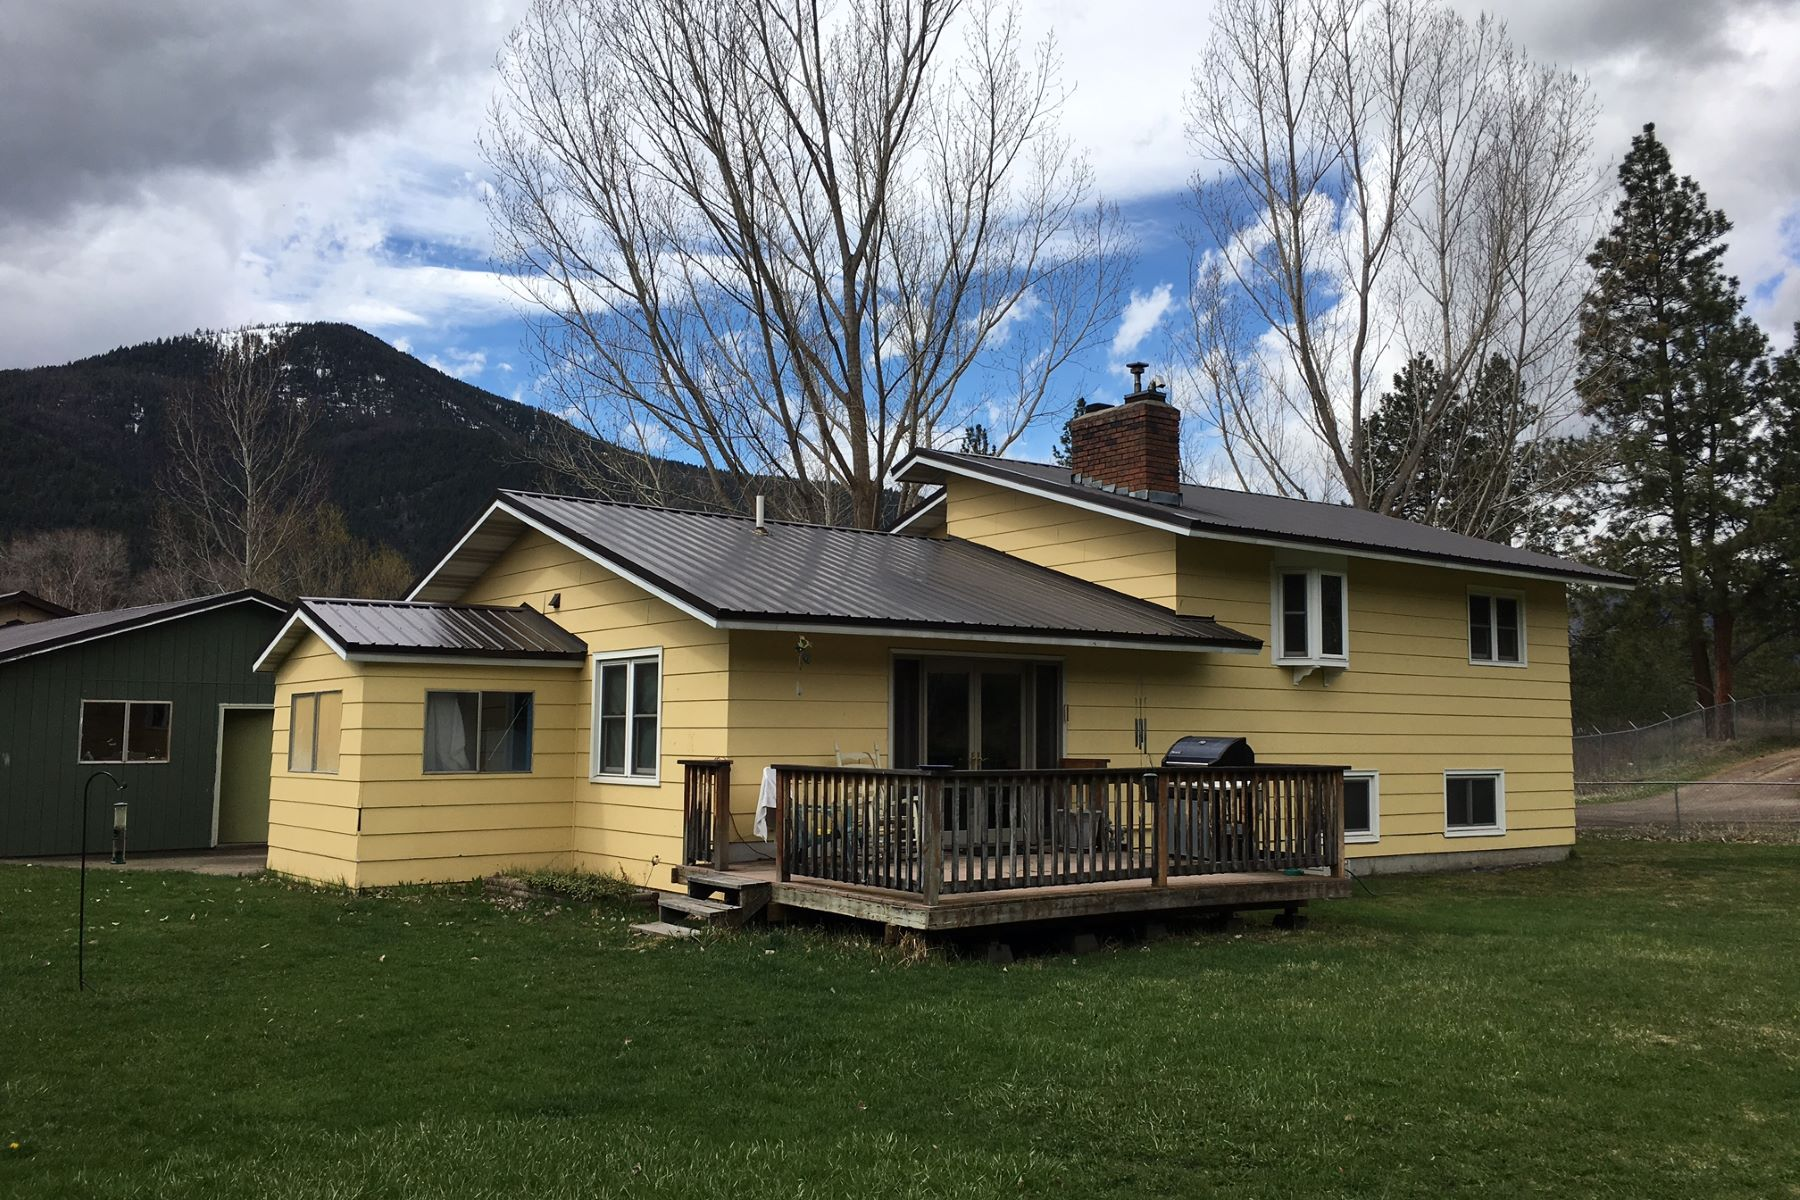 Additional photo for property listing at 12440 Us Highway 10 E, Clinton, MT 59825 12440  Us Highway 10   E Clinton, Montana 59825 United States